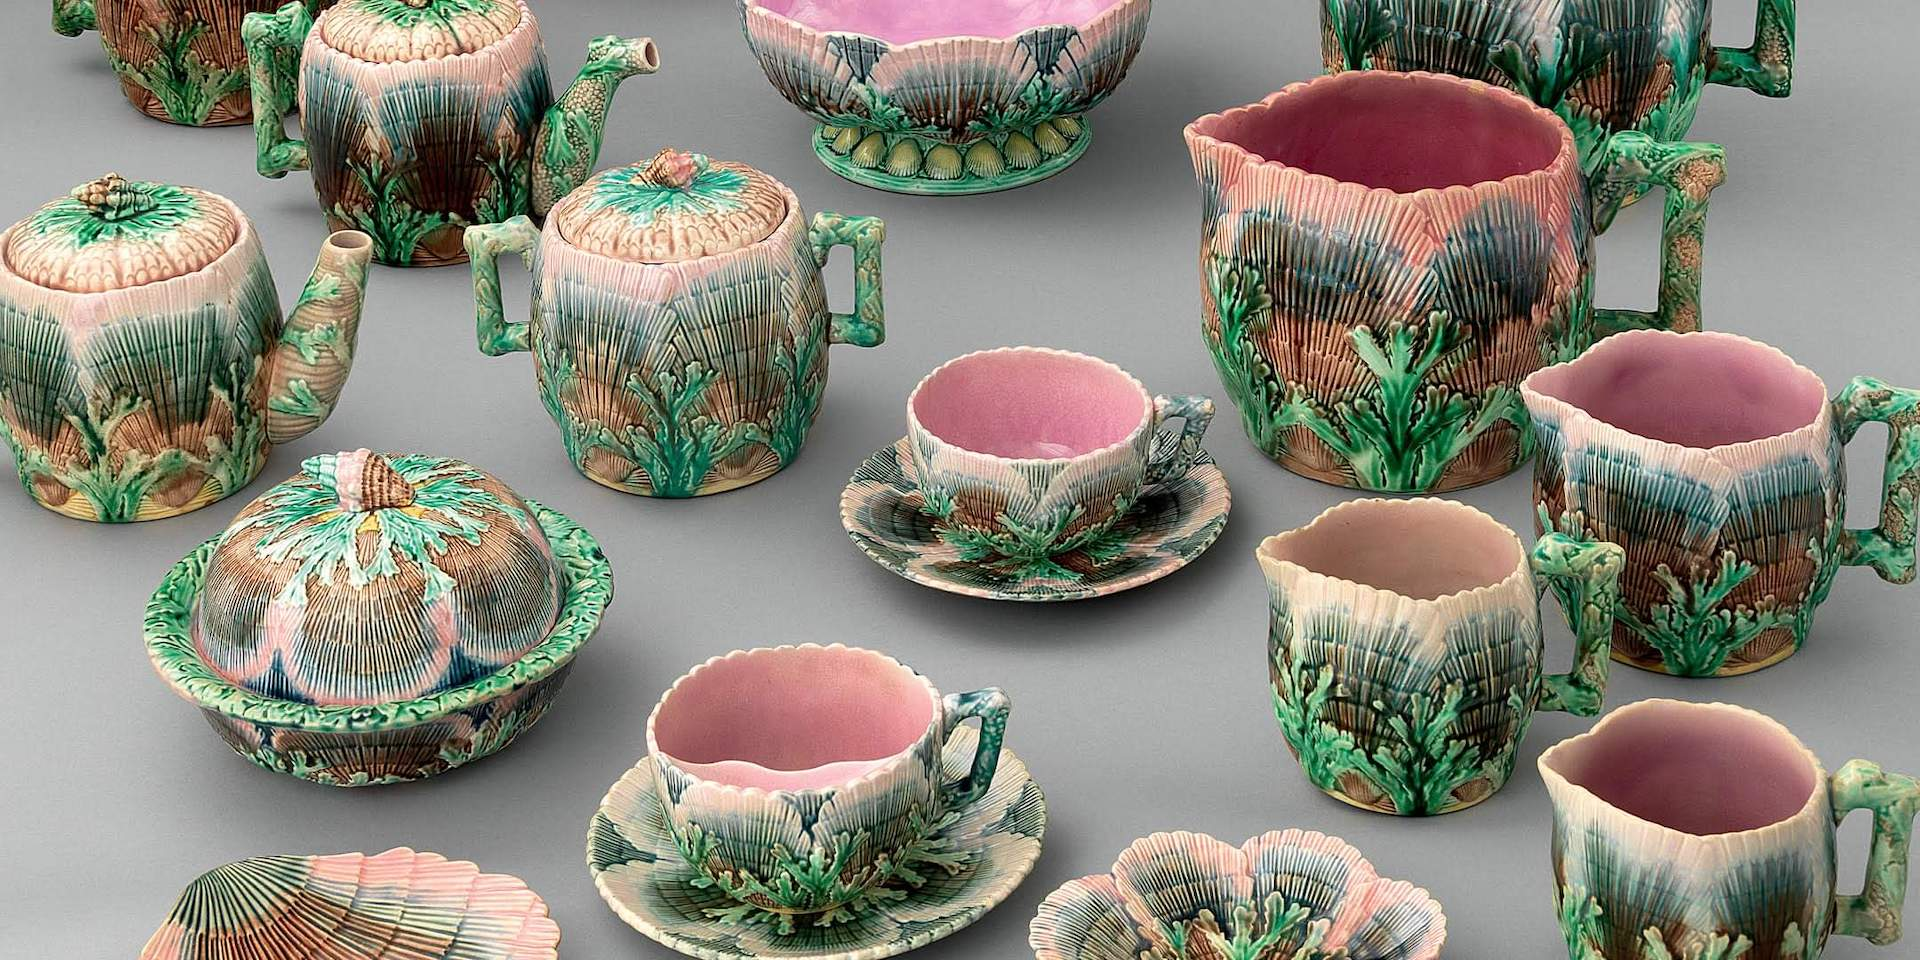 Shell Ware from Griffen, Smith & Co, 1879-90. Photo © Bruce M White; courtesy of Bard Graduate Center